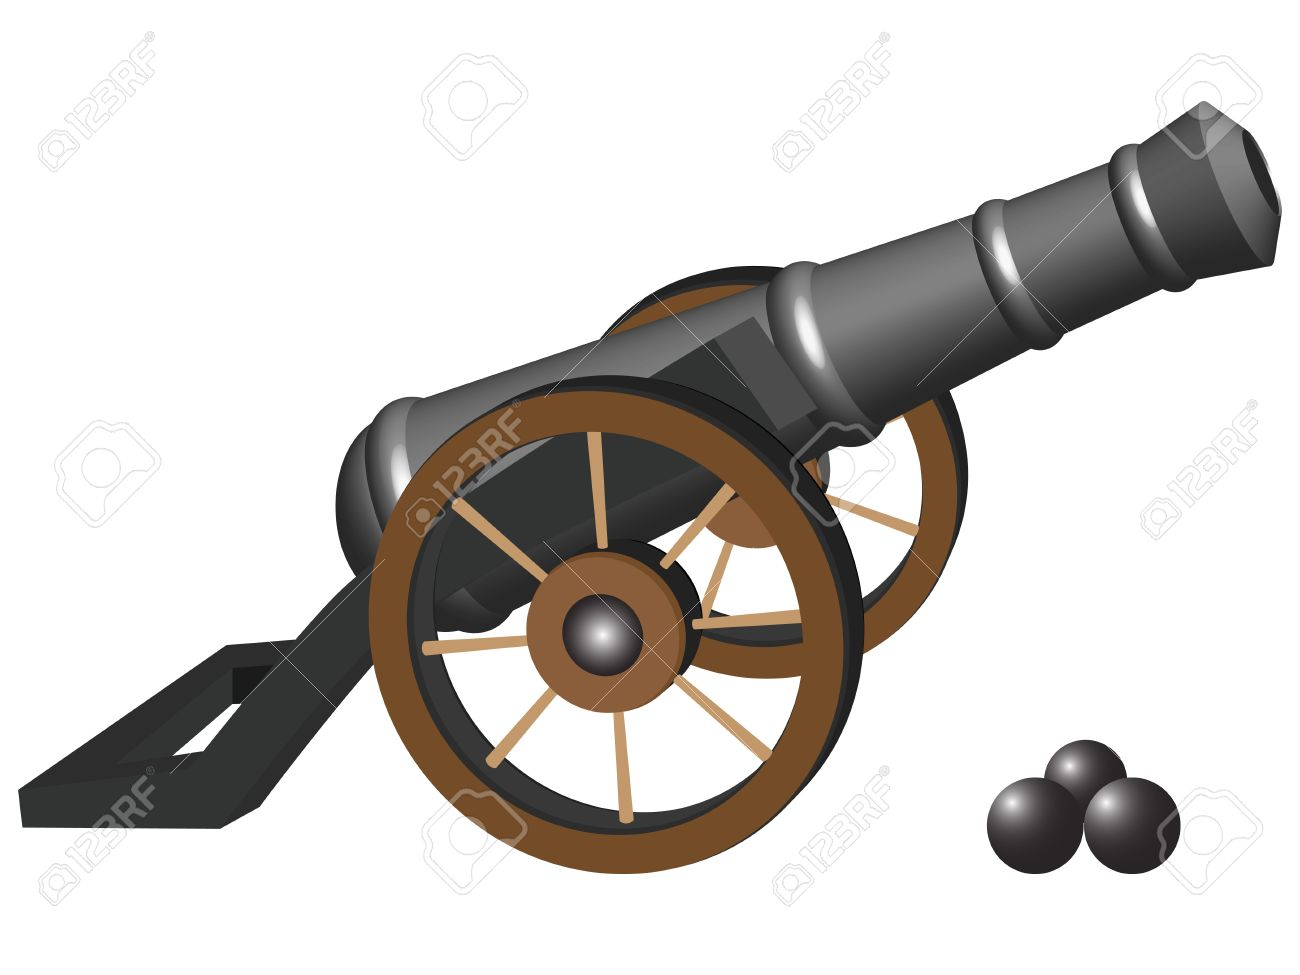 Ancient Cannon And Iron Balls Against White Background, Abstract.